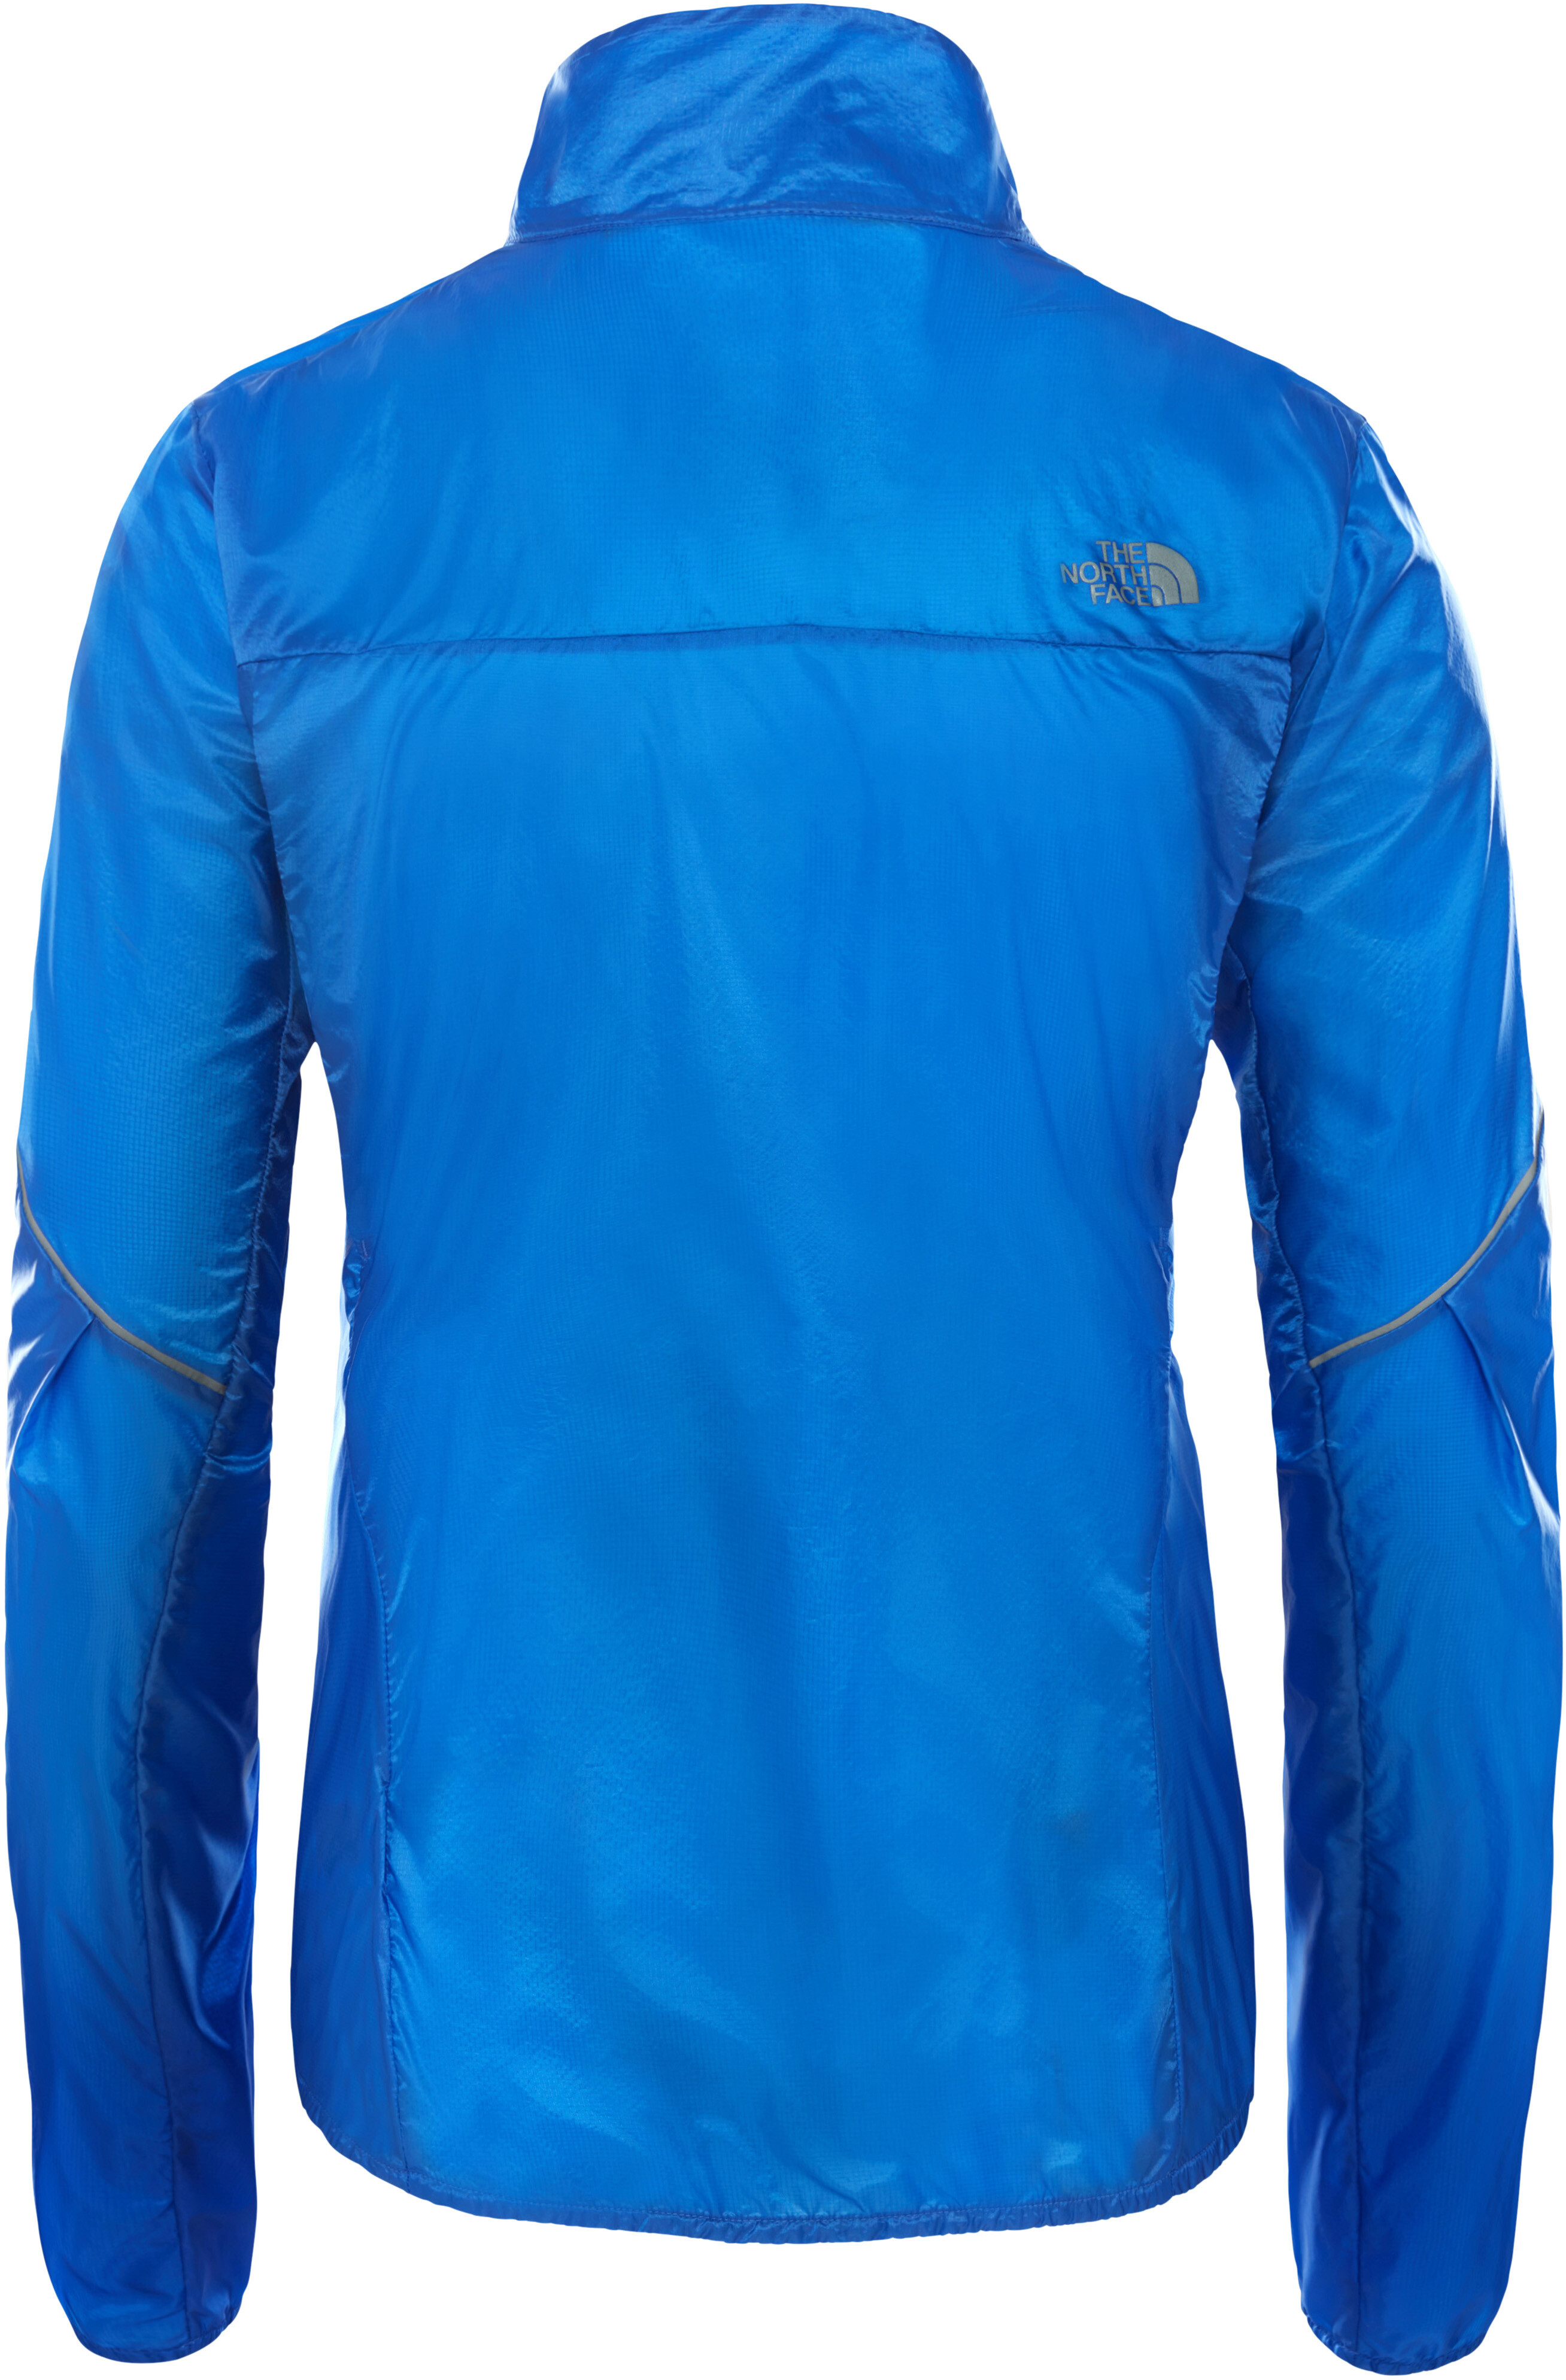 84a29226dd74 The North Face Flight Better Than Naked Running Jacket Women blue at ...